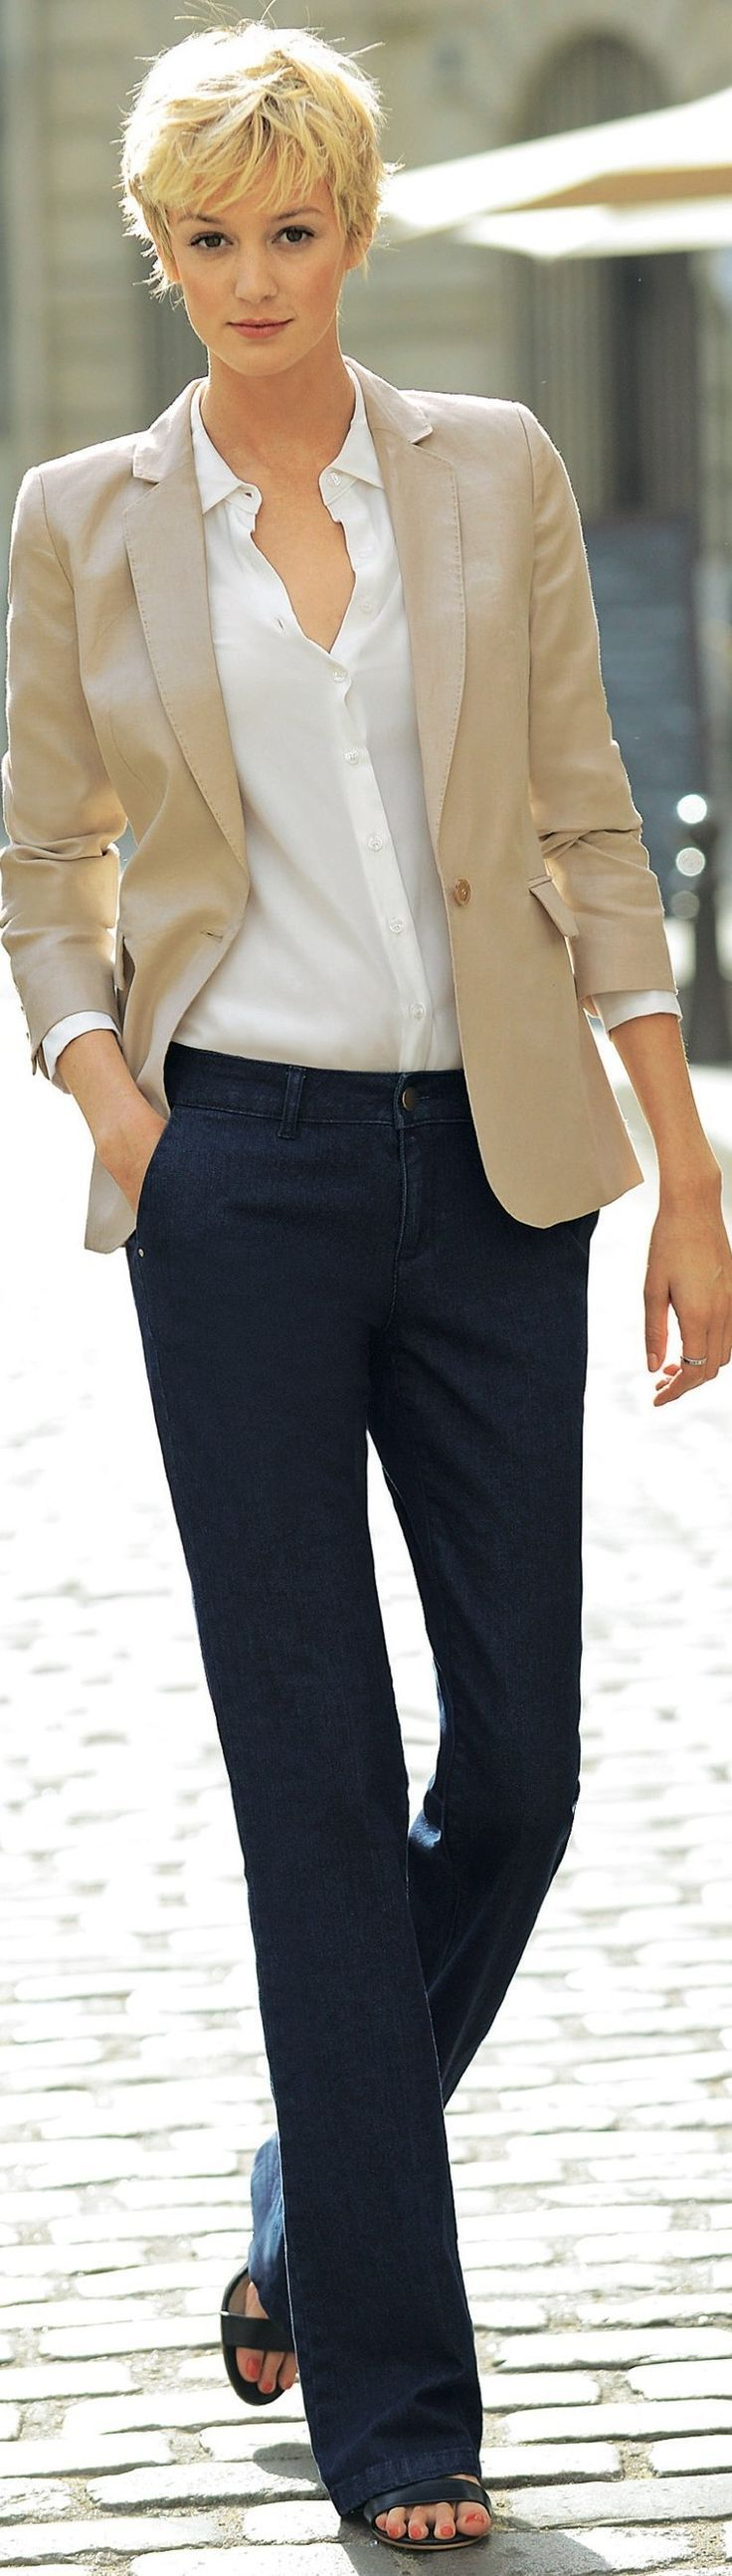 fashion for women over 50 read tips for classic tailored fashion - http://www.boomerinas.com xhhxdqw